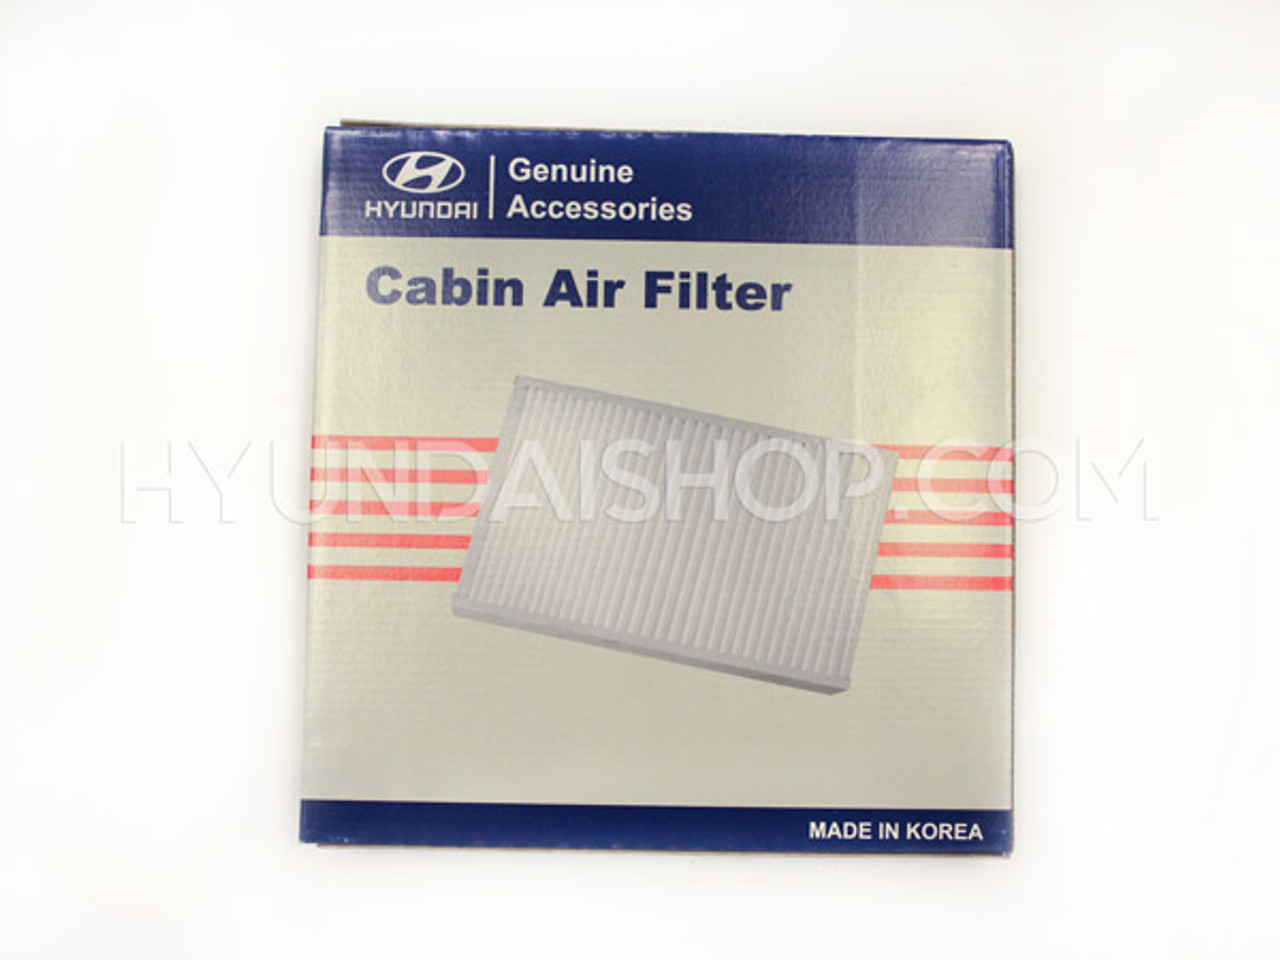 Hyundai Routine Maintenance Kit - 30K Miles: Cabin Air Filter